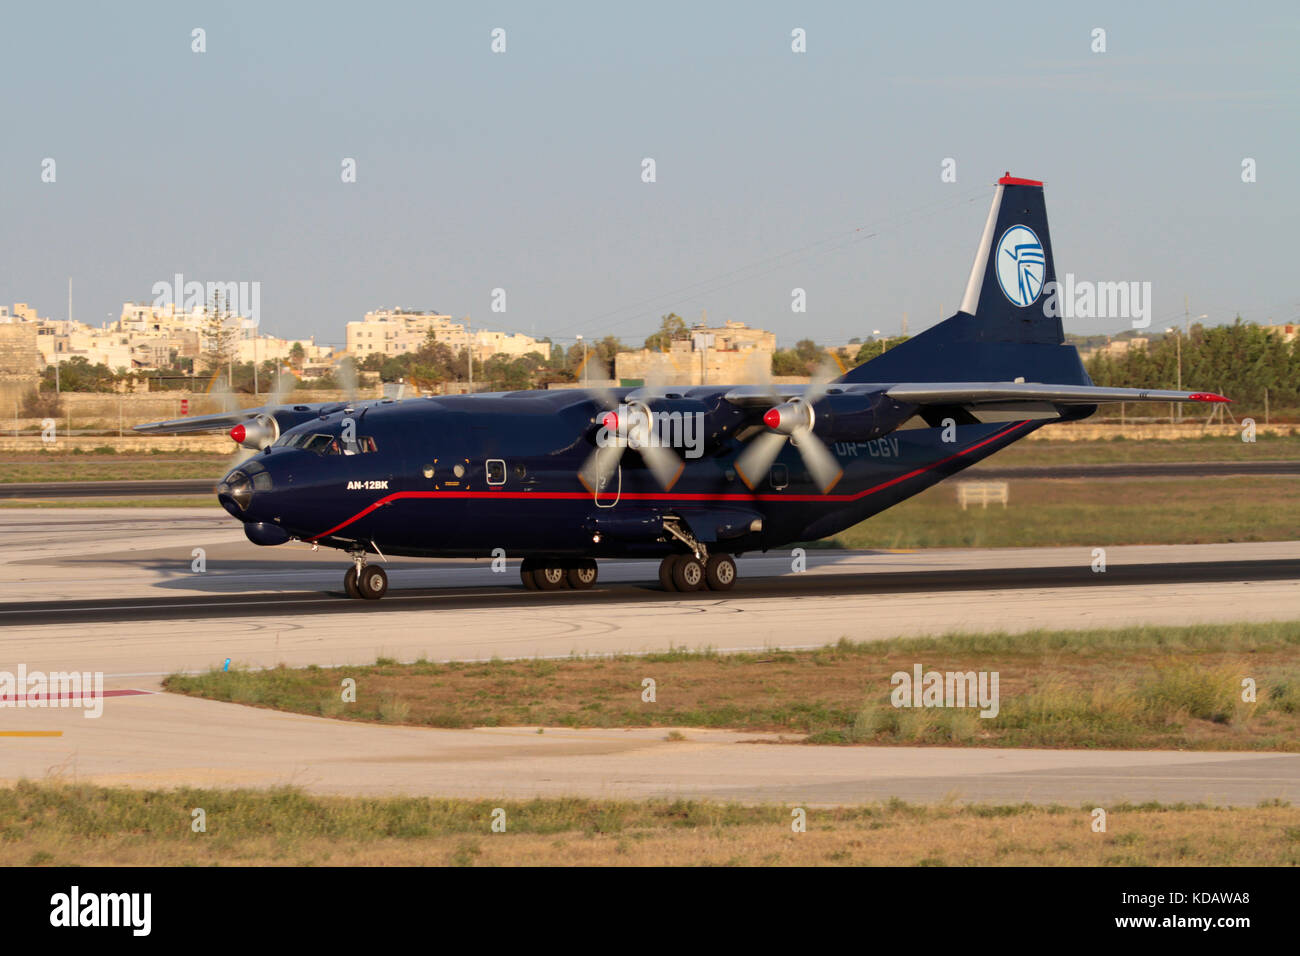 Antonov An-12 turboprop cargo plane operated by Ukraine Air Alliance on arrival in Malta - Stock Image